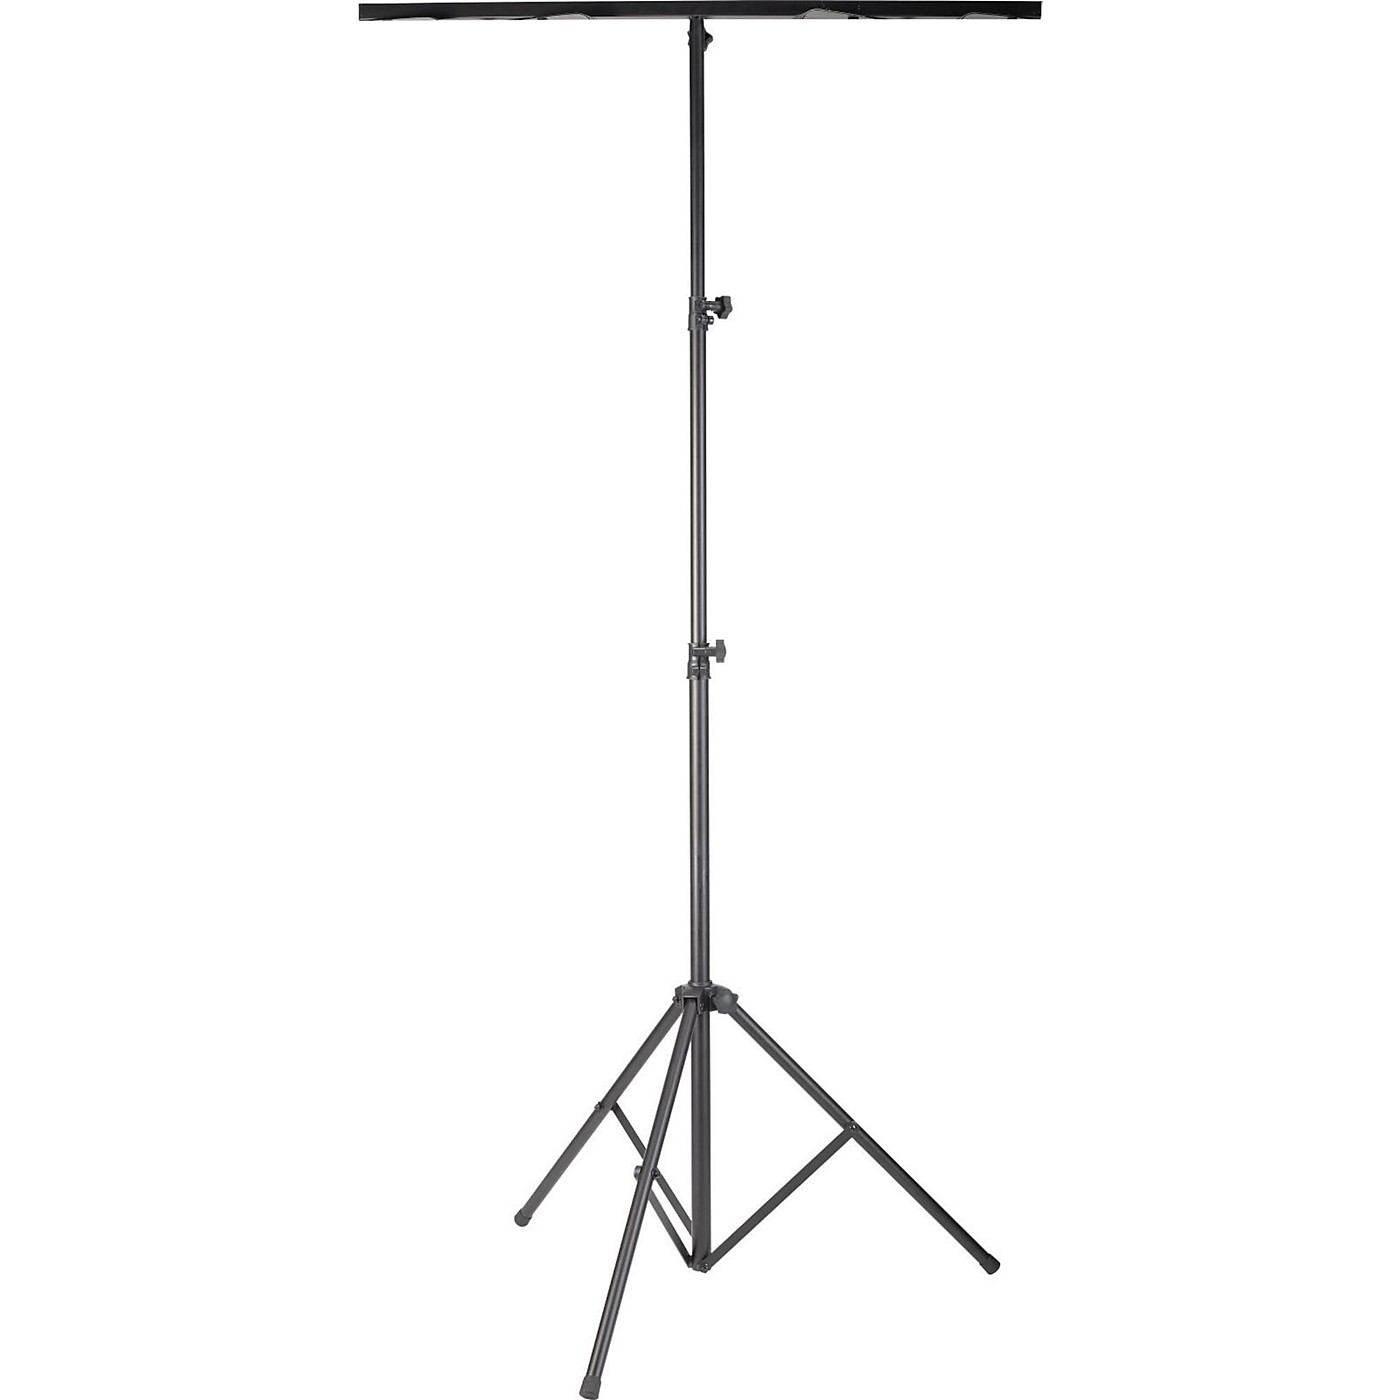 Stagg Height Adjustable Light Stand With Folding Legs thumbnail